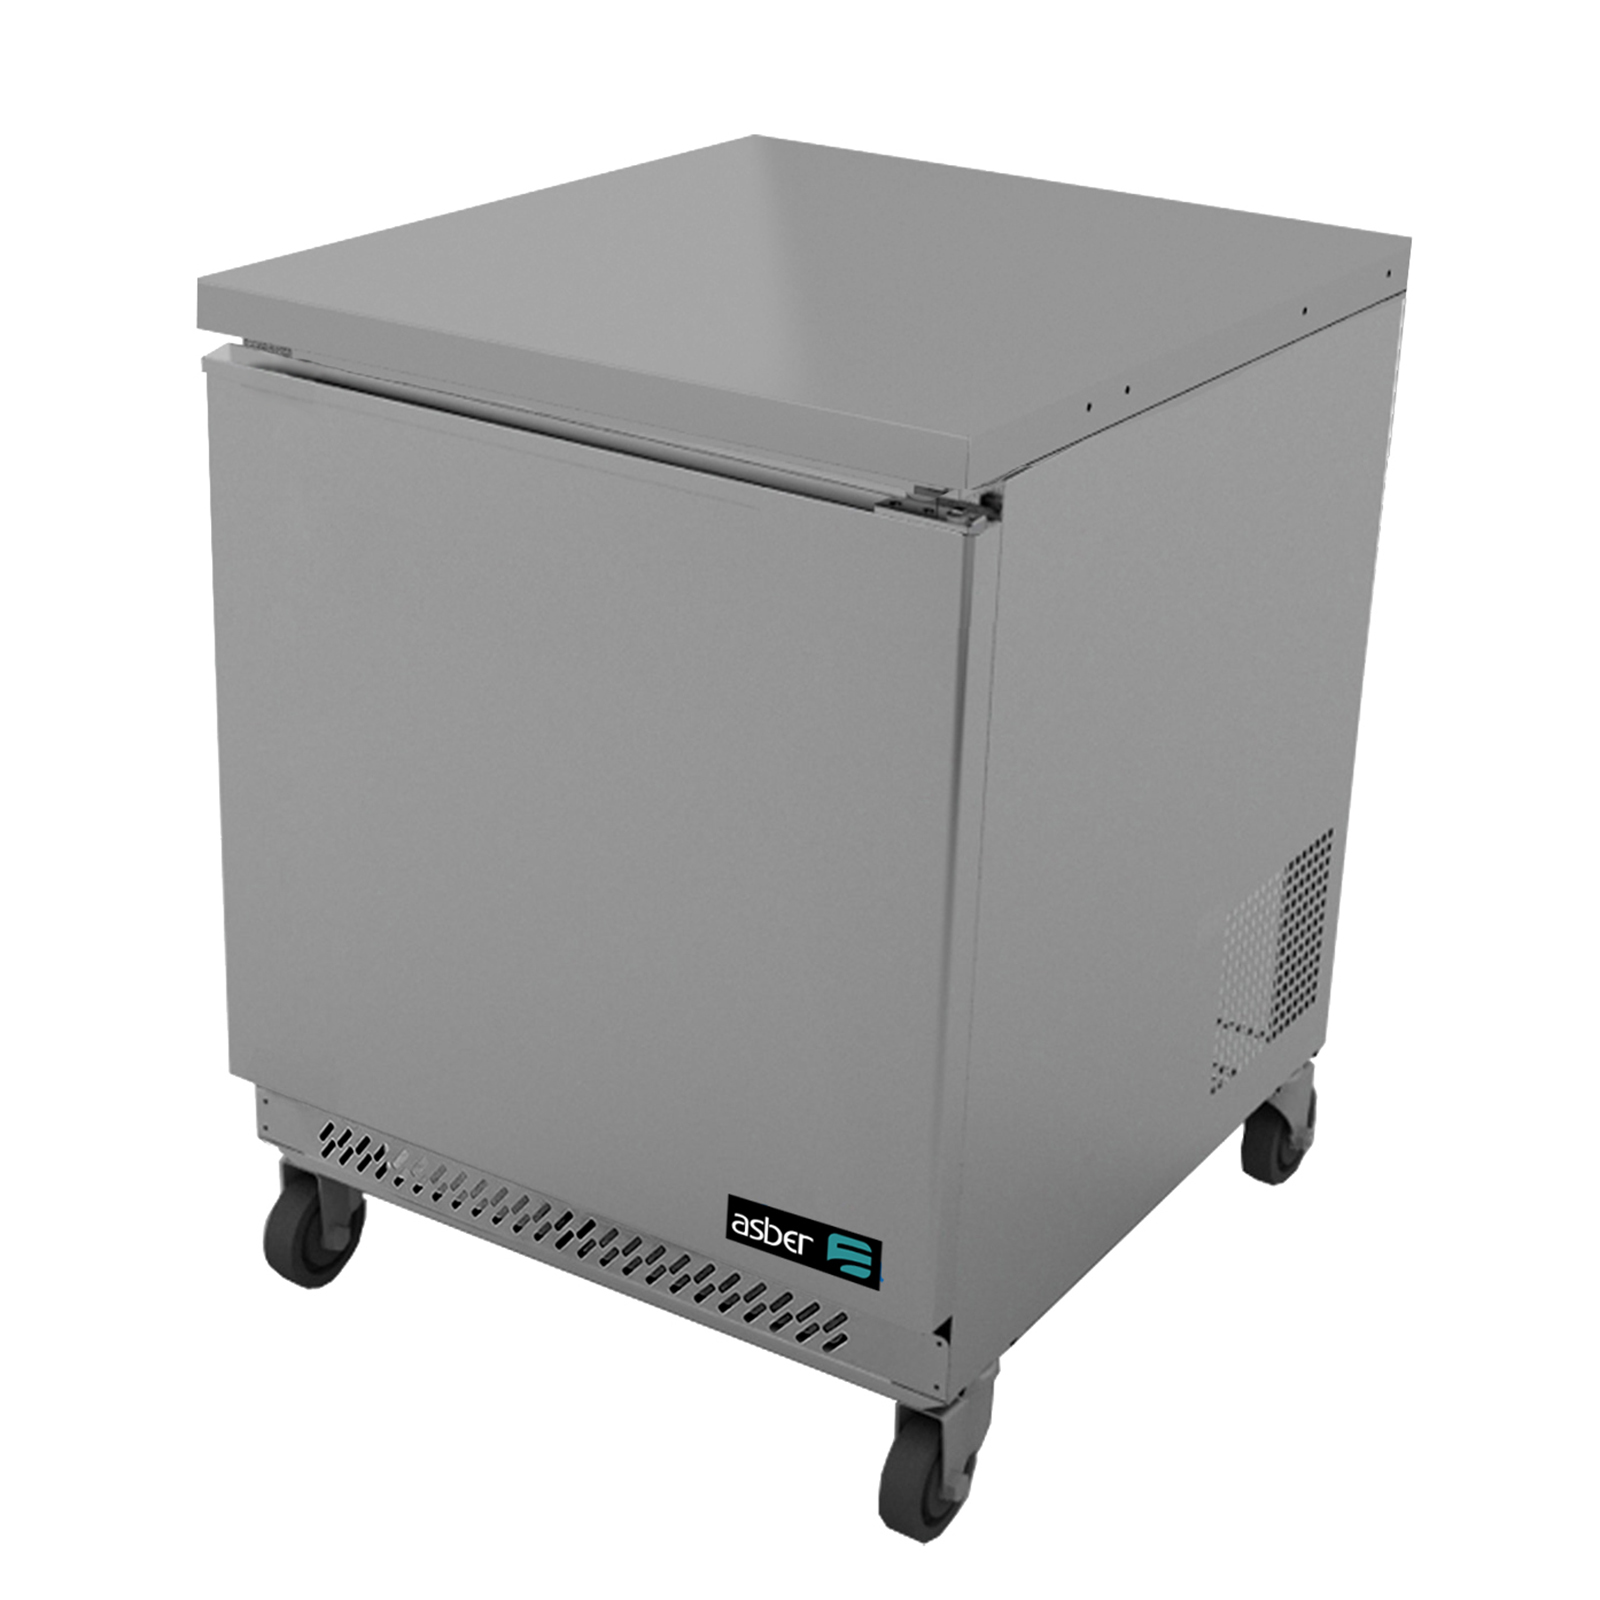 Asber AUTF-27 freezer, undercounter, reach-in